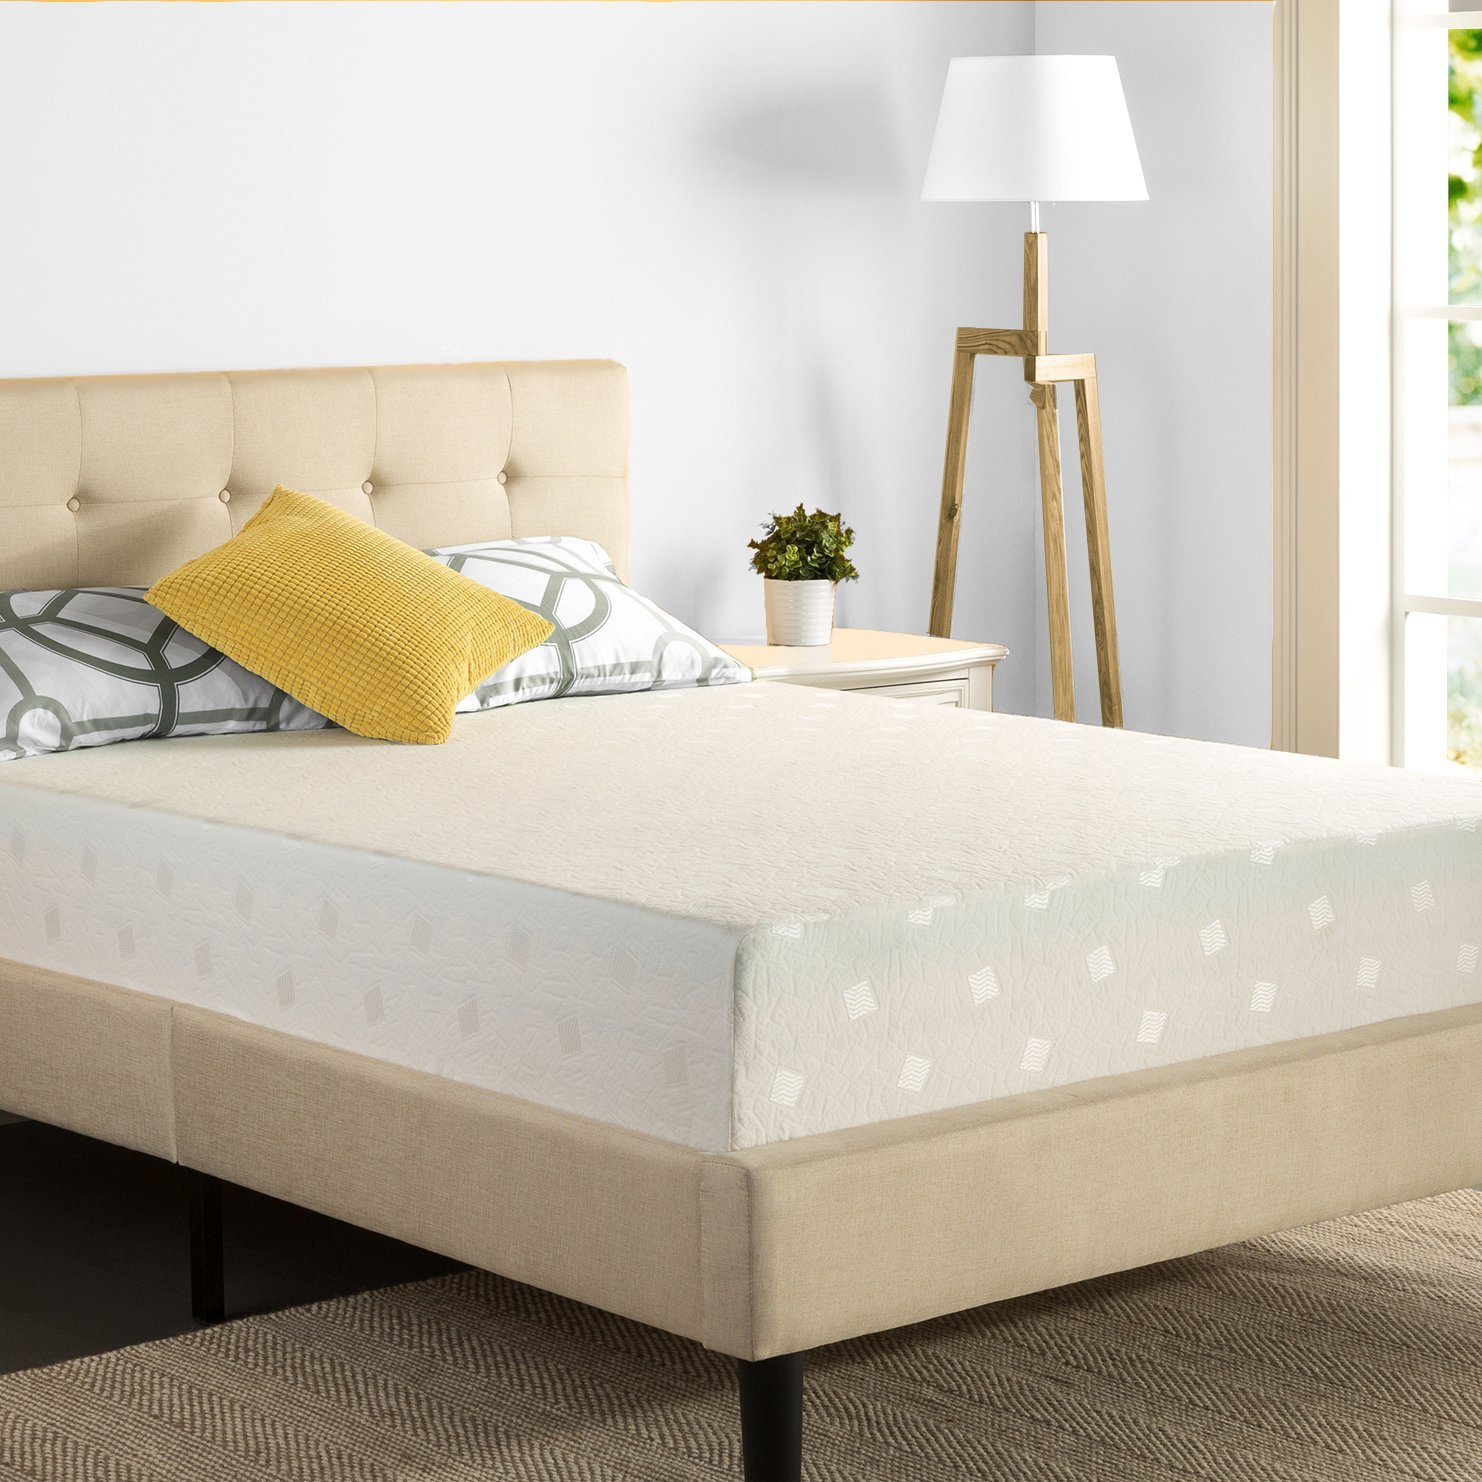 Zinus 12 inch Memory Foam Multi-Layer Airflow Mattress